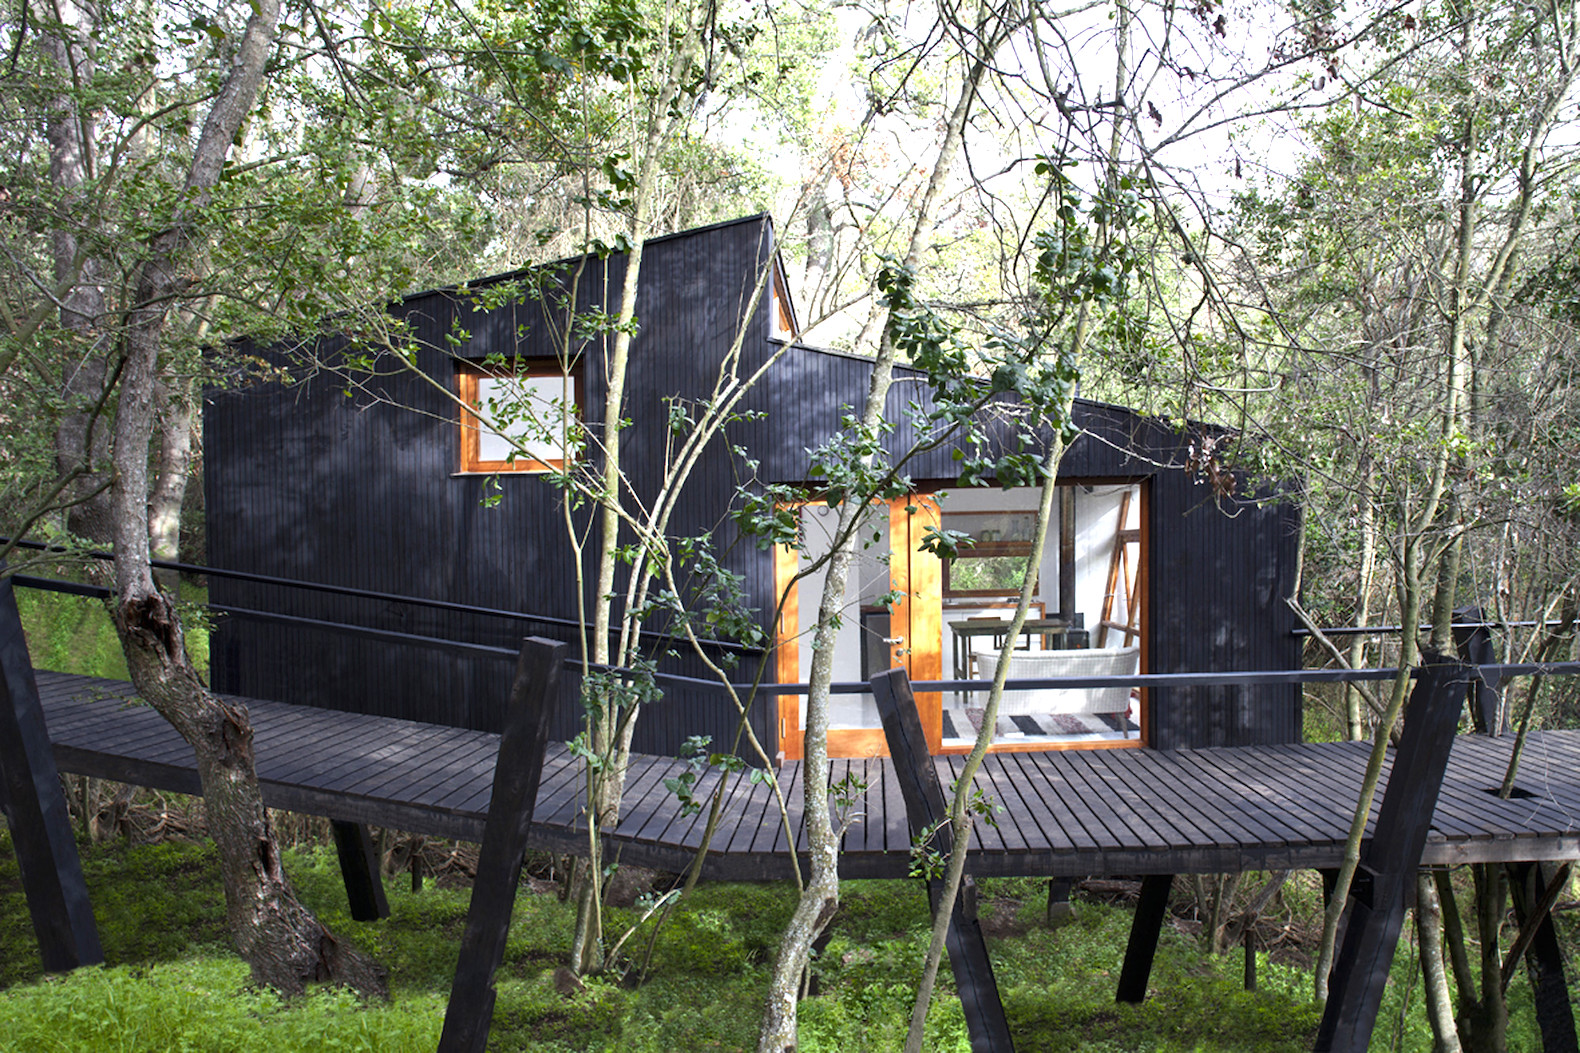 Classy Chilean Forest House On Stilts Inhabitat Green Architecture House On Stilts Minecraft House On Stilts Beach Casa Quebrada Is A Tiny Haven Immersed curbed House On Stilts